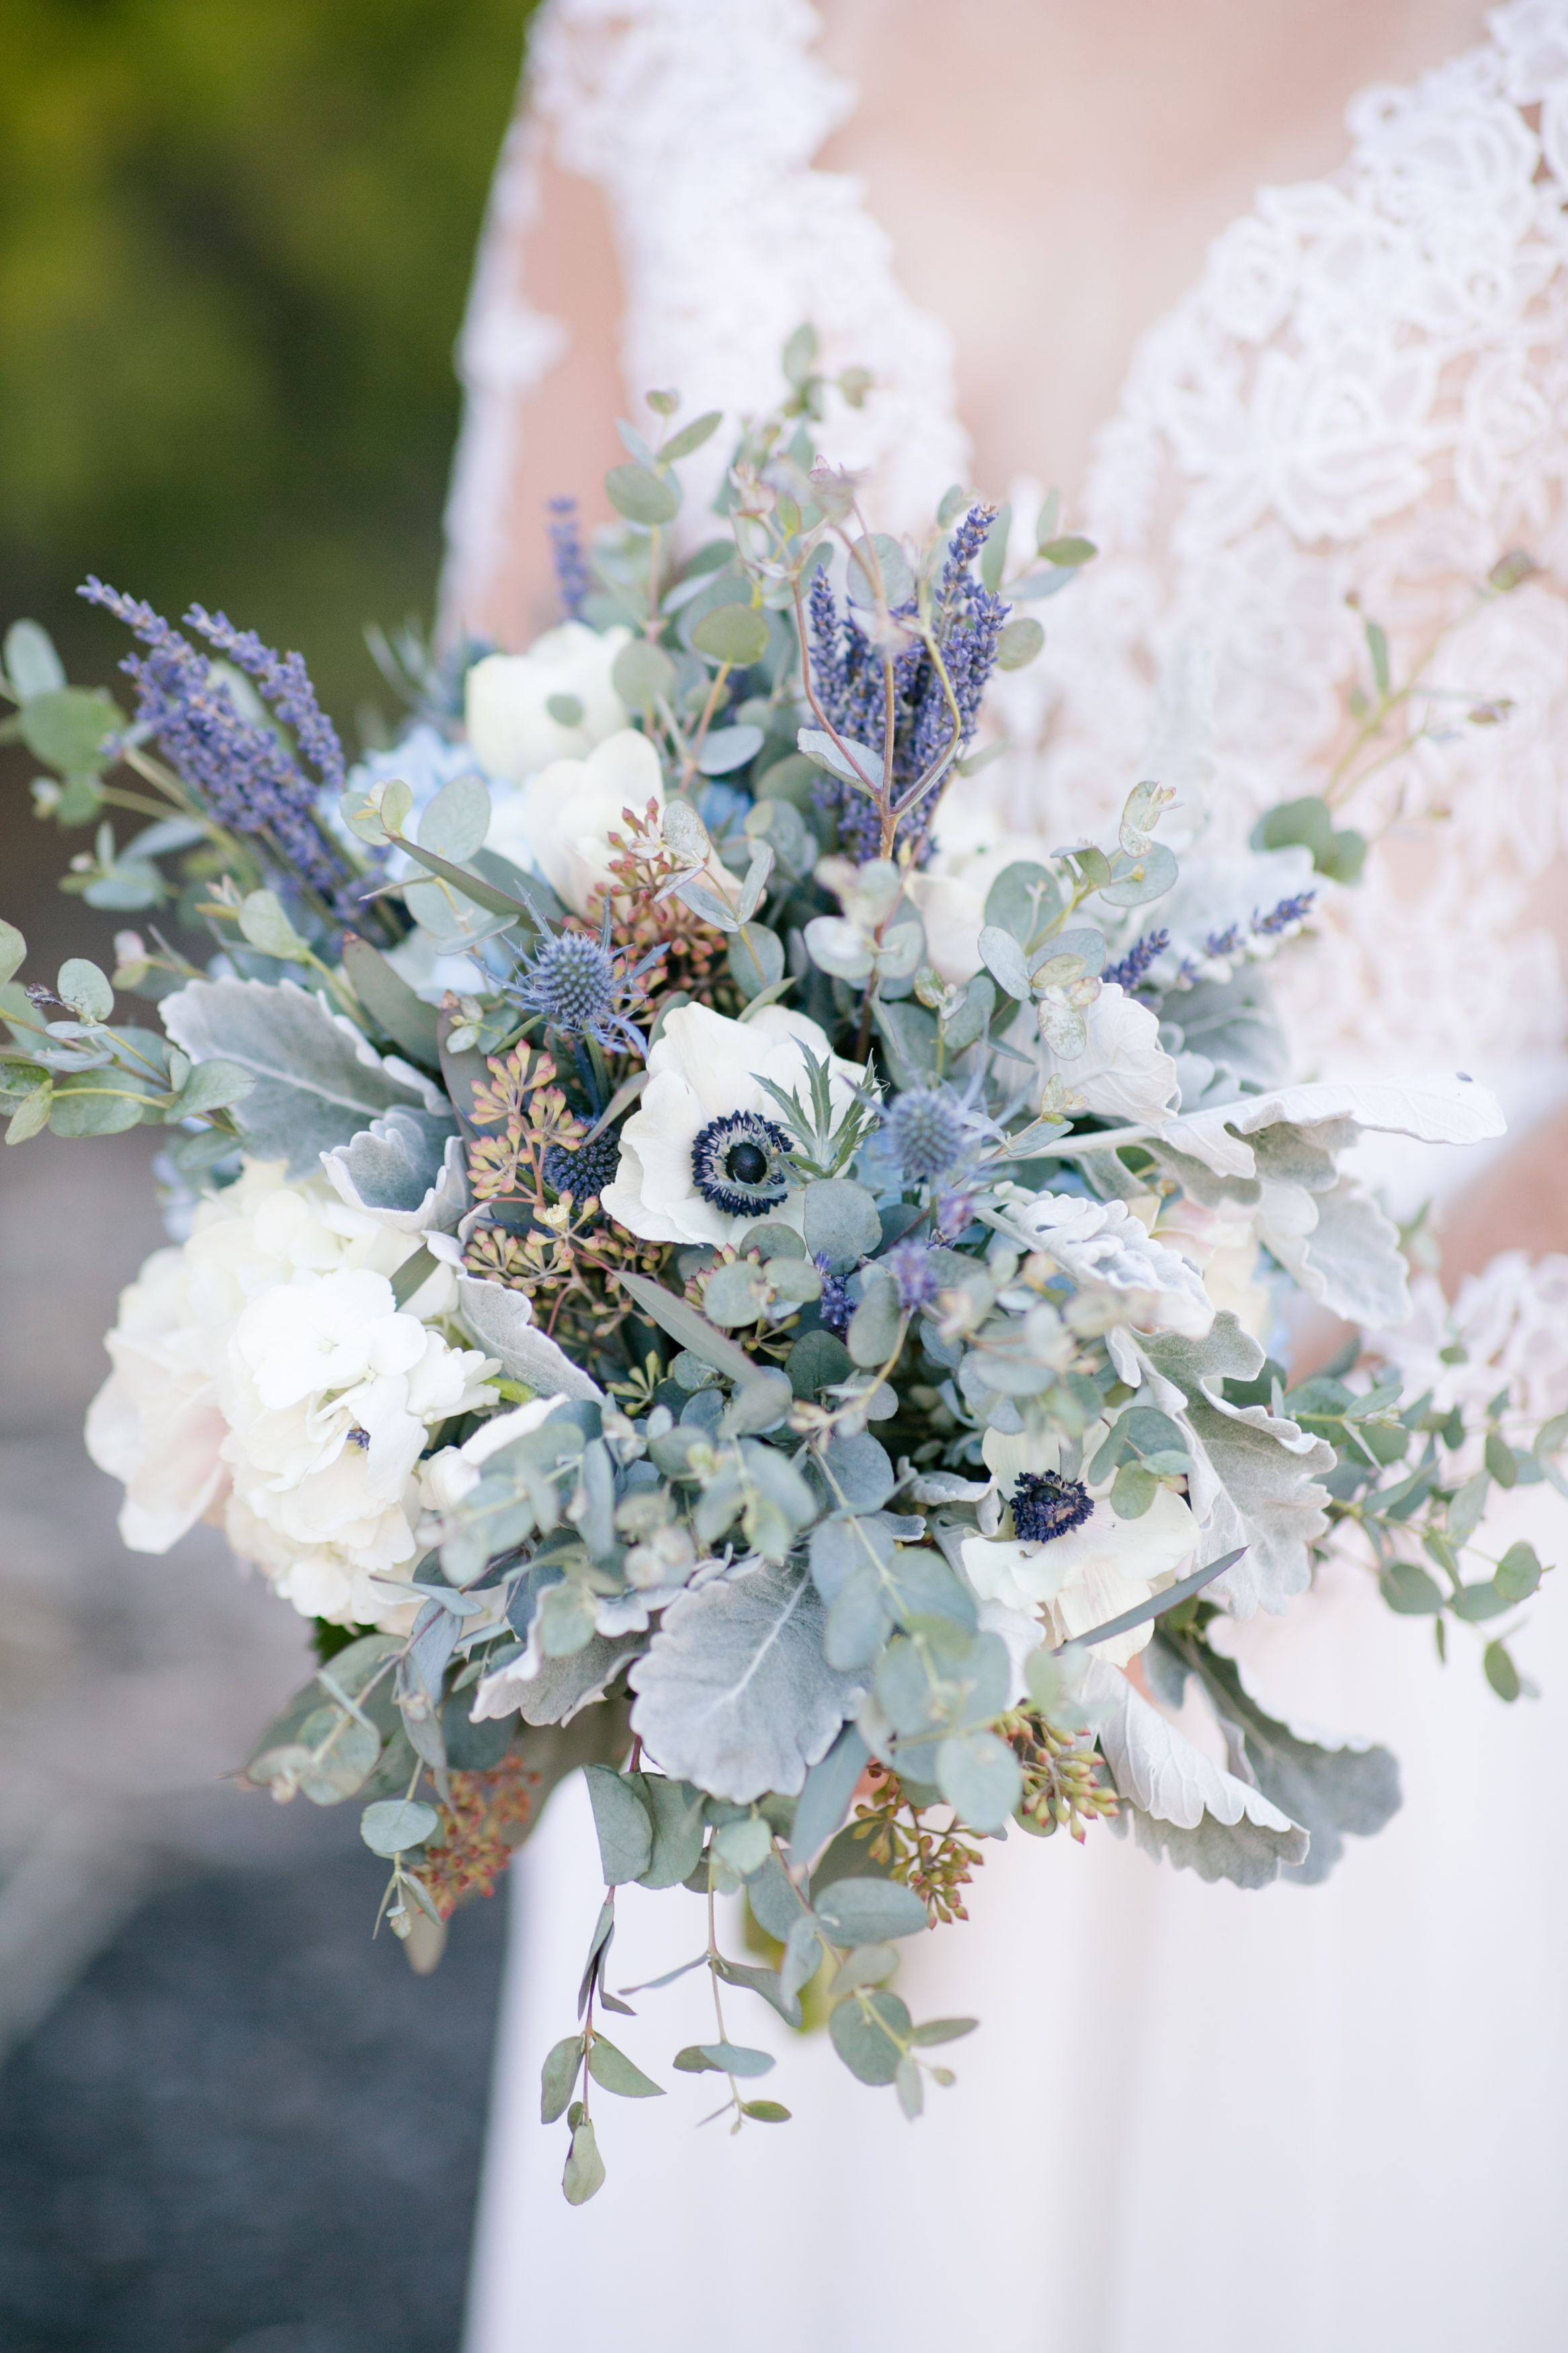 The perfect spring bouquet for the bride. #purpleweddingflowers